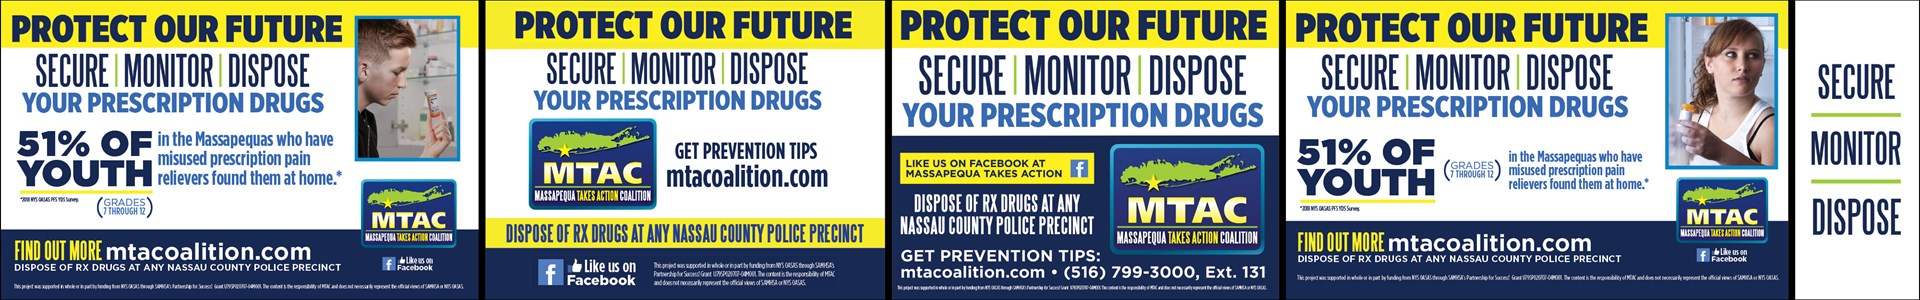 Massapequa Takes Action - Secure Monitor Dispose Collage